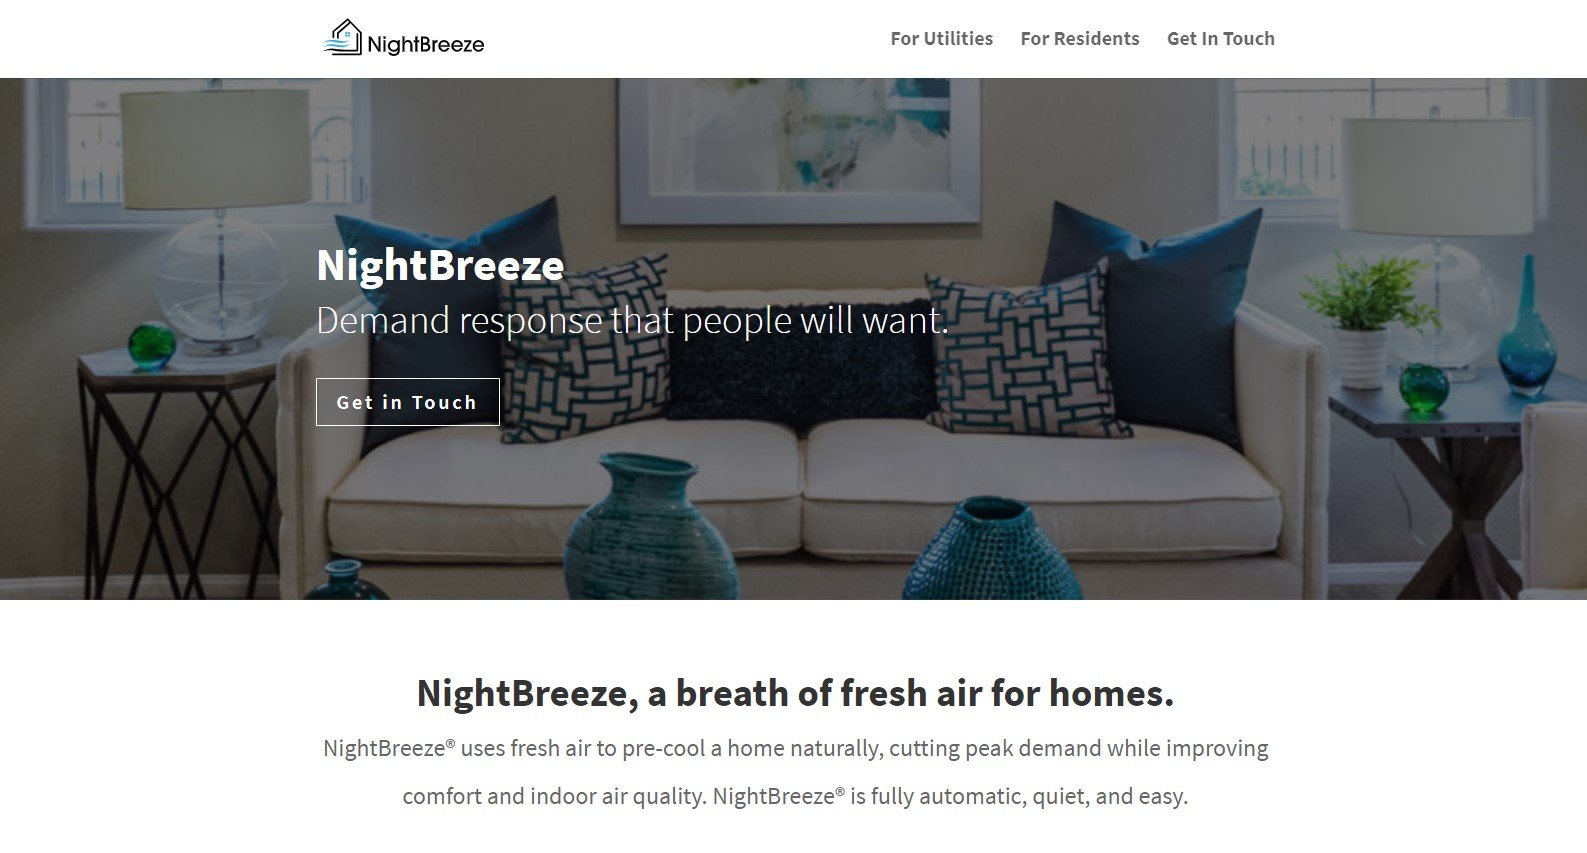 NightBreeze Pre-Cooling Systems